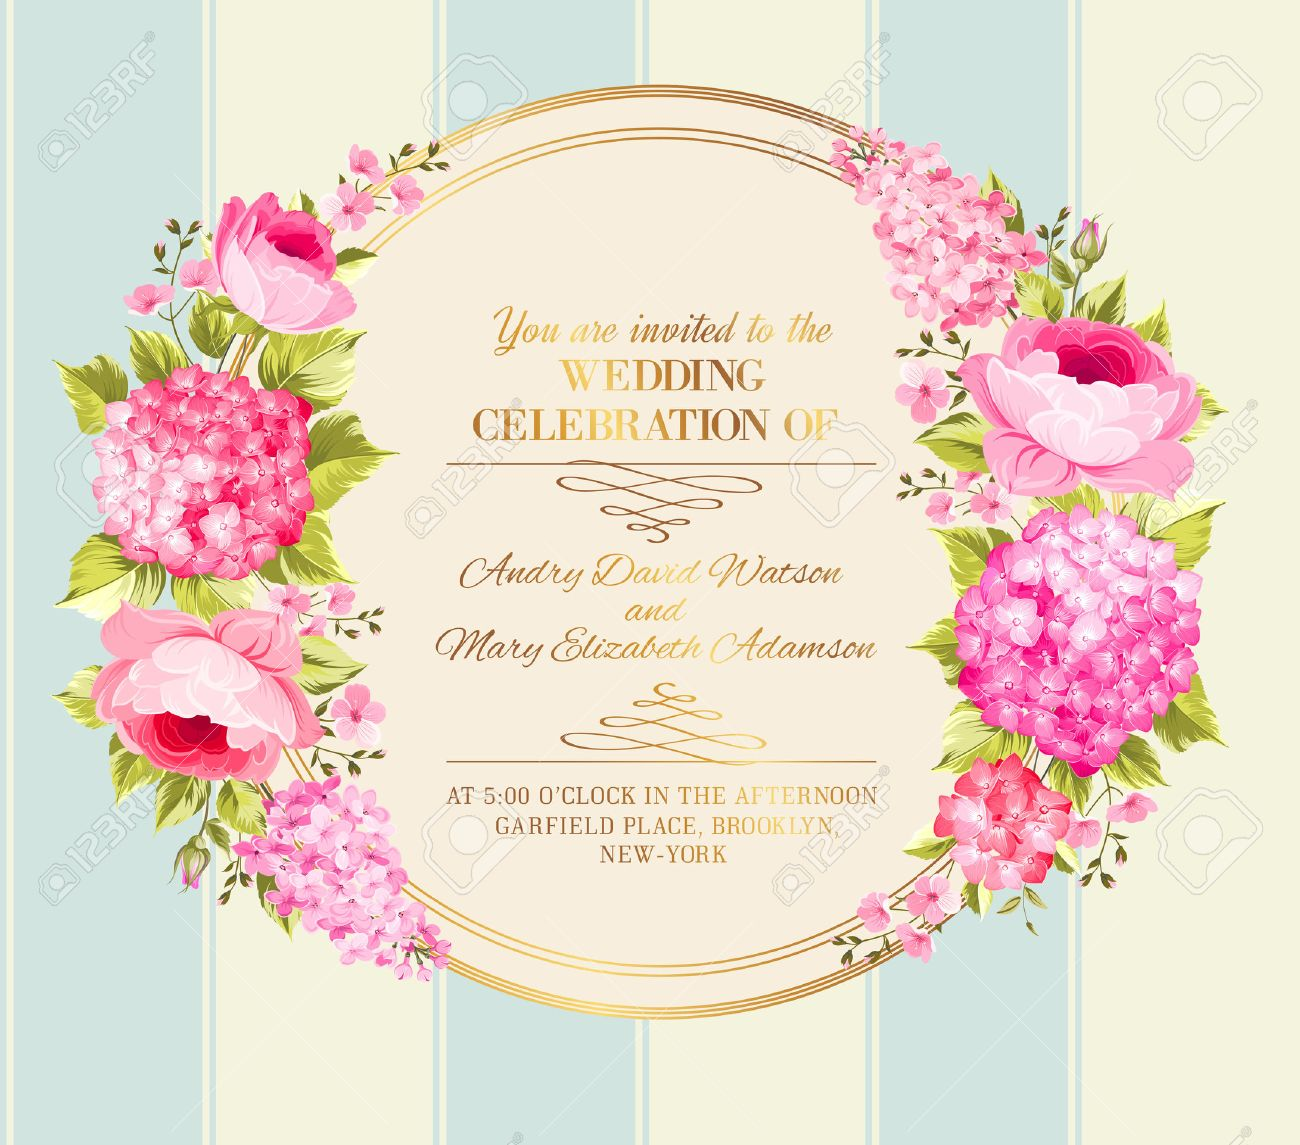 Awesome vintage label of color flowers wedding invitation card awesome vintage label of color flowers wedding invitation card of color flowers vector illustration stopboris Images